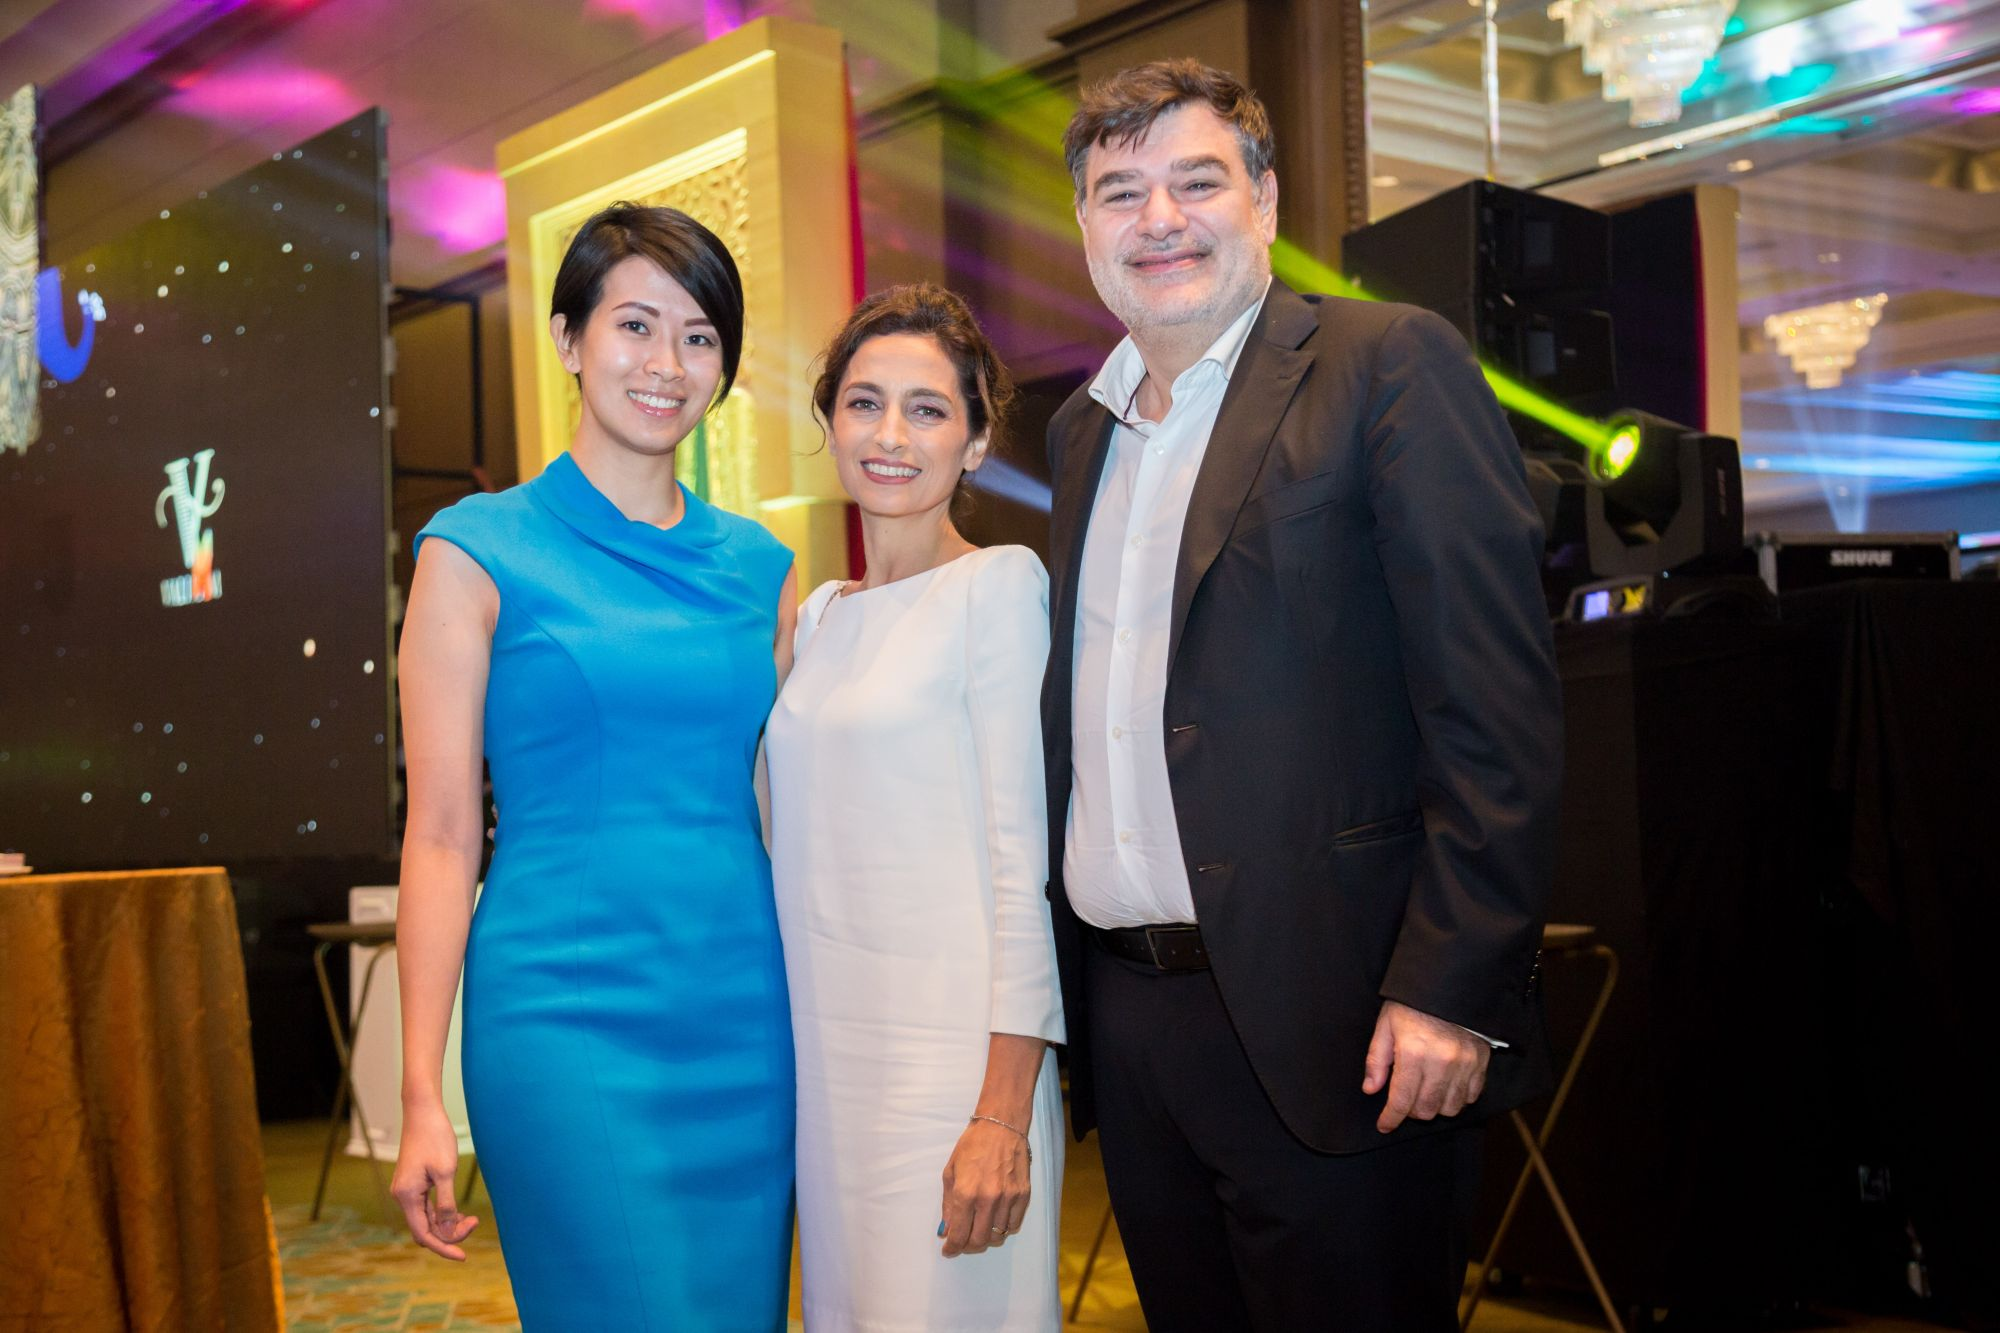 Dr Andrea Lim and Mida and Malek Bekdache